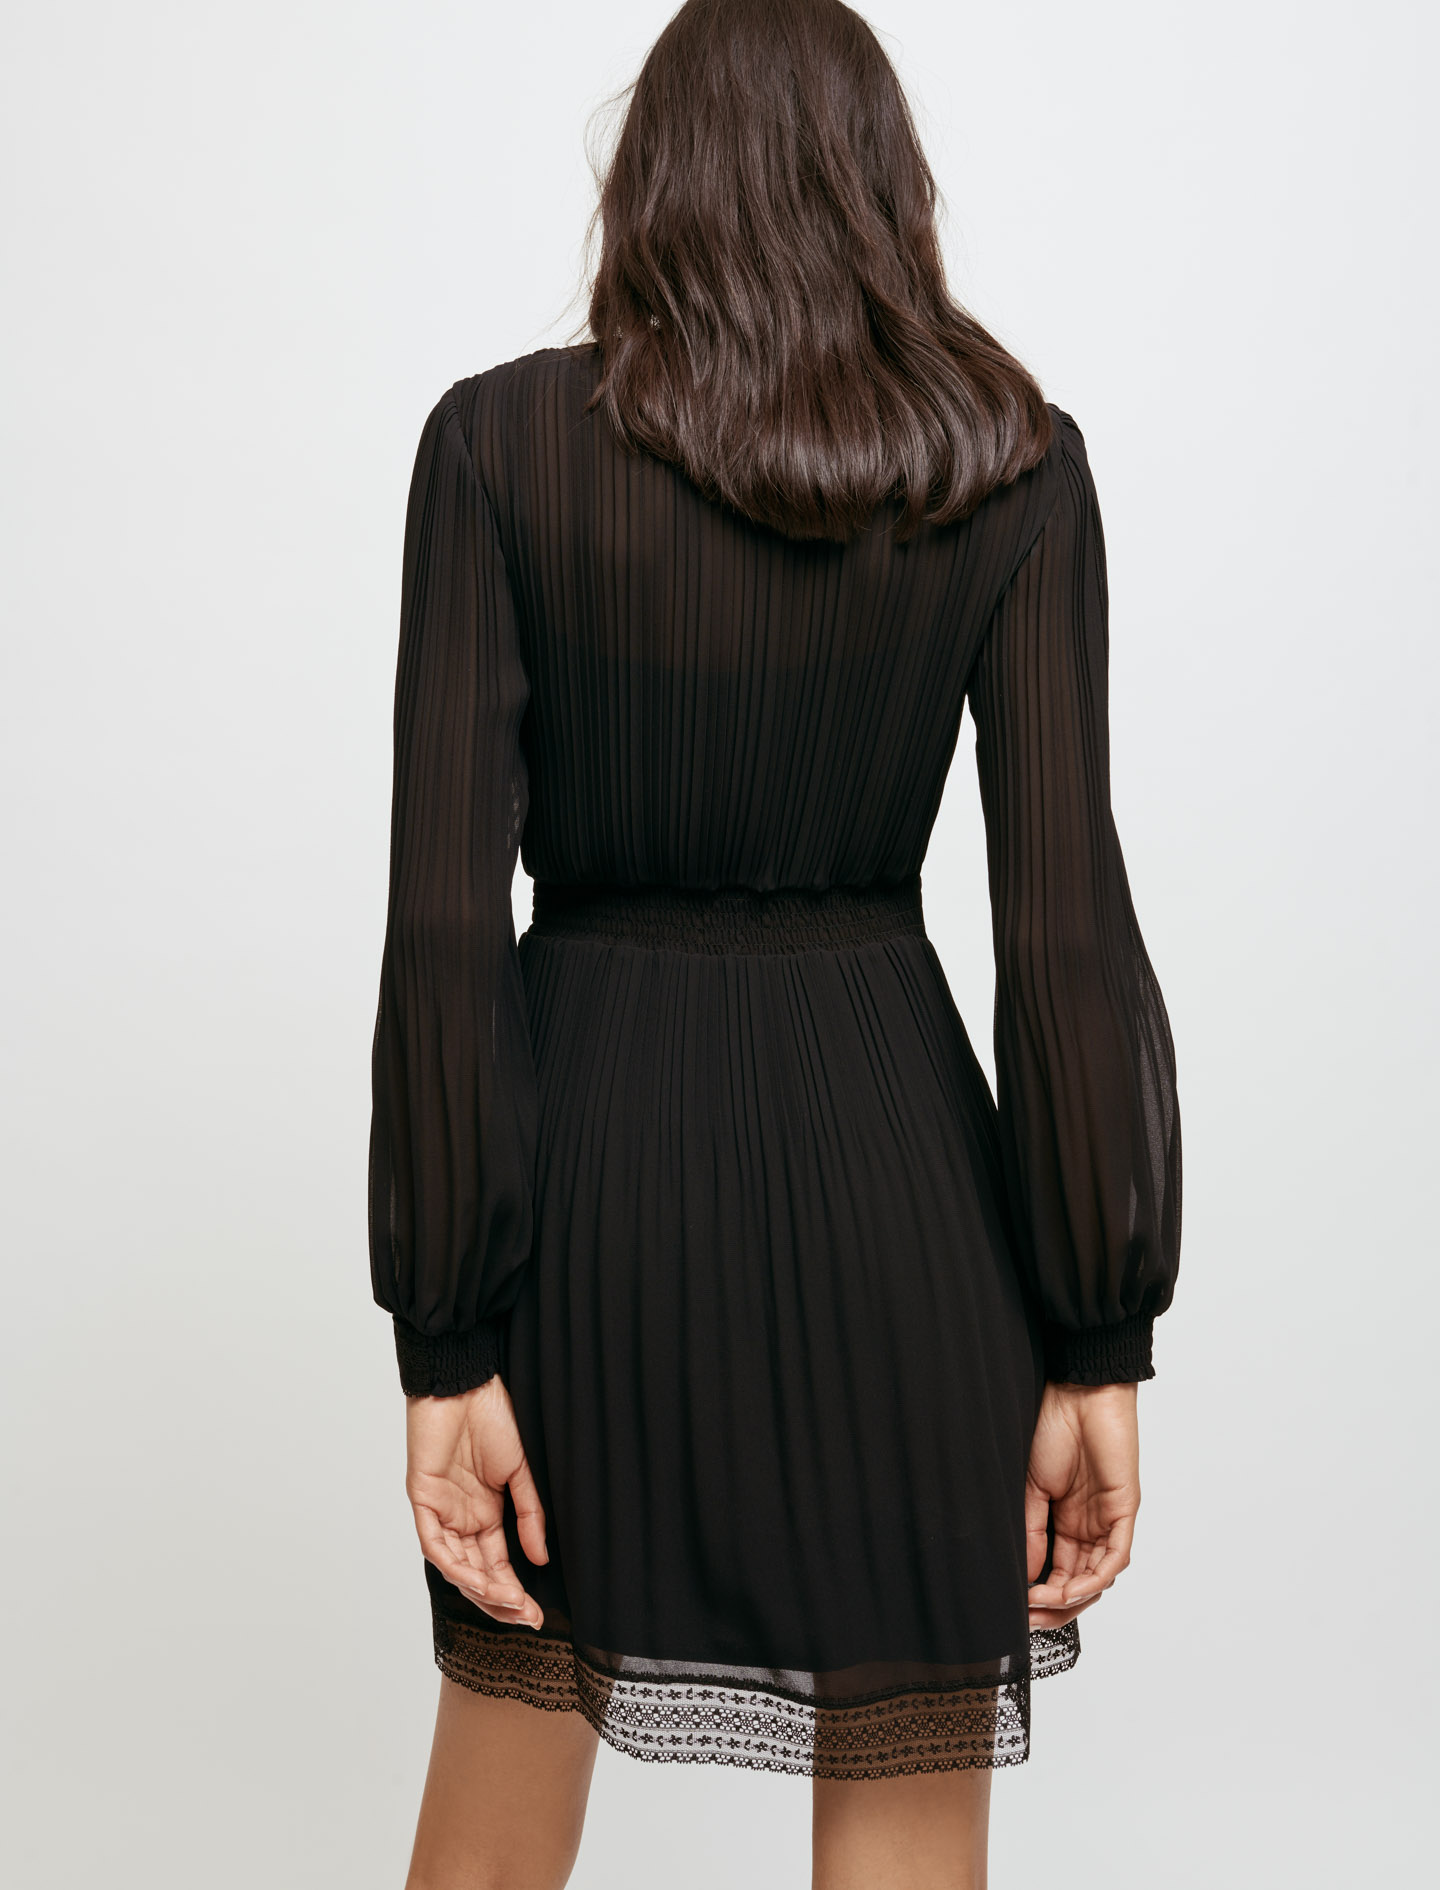 Muslin and lace smocked dress - Black